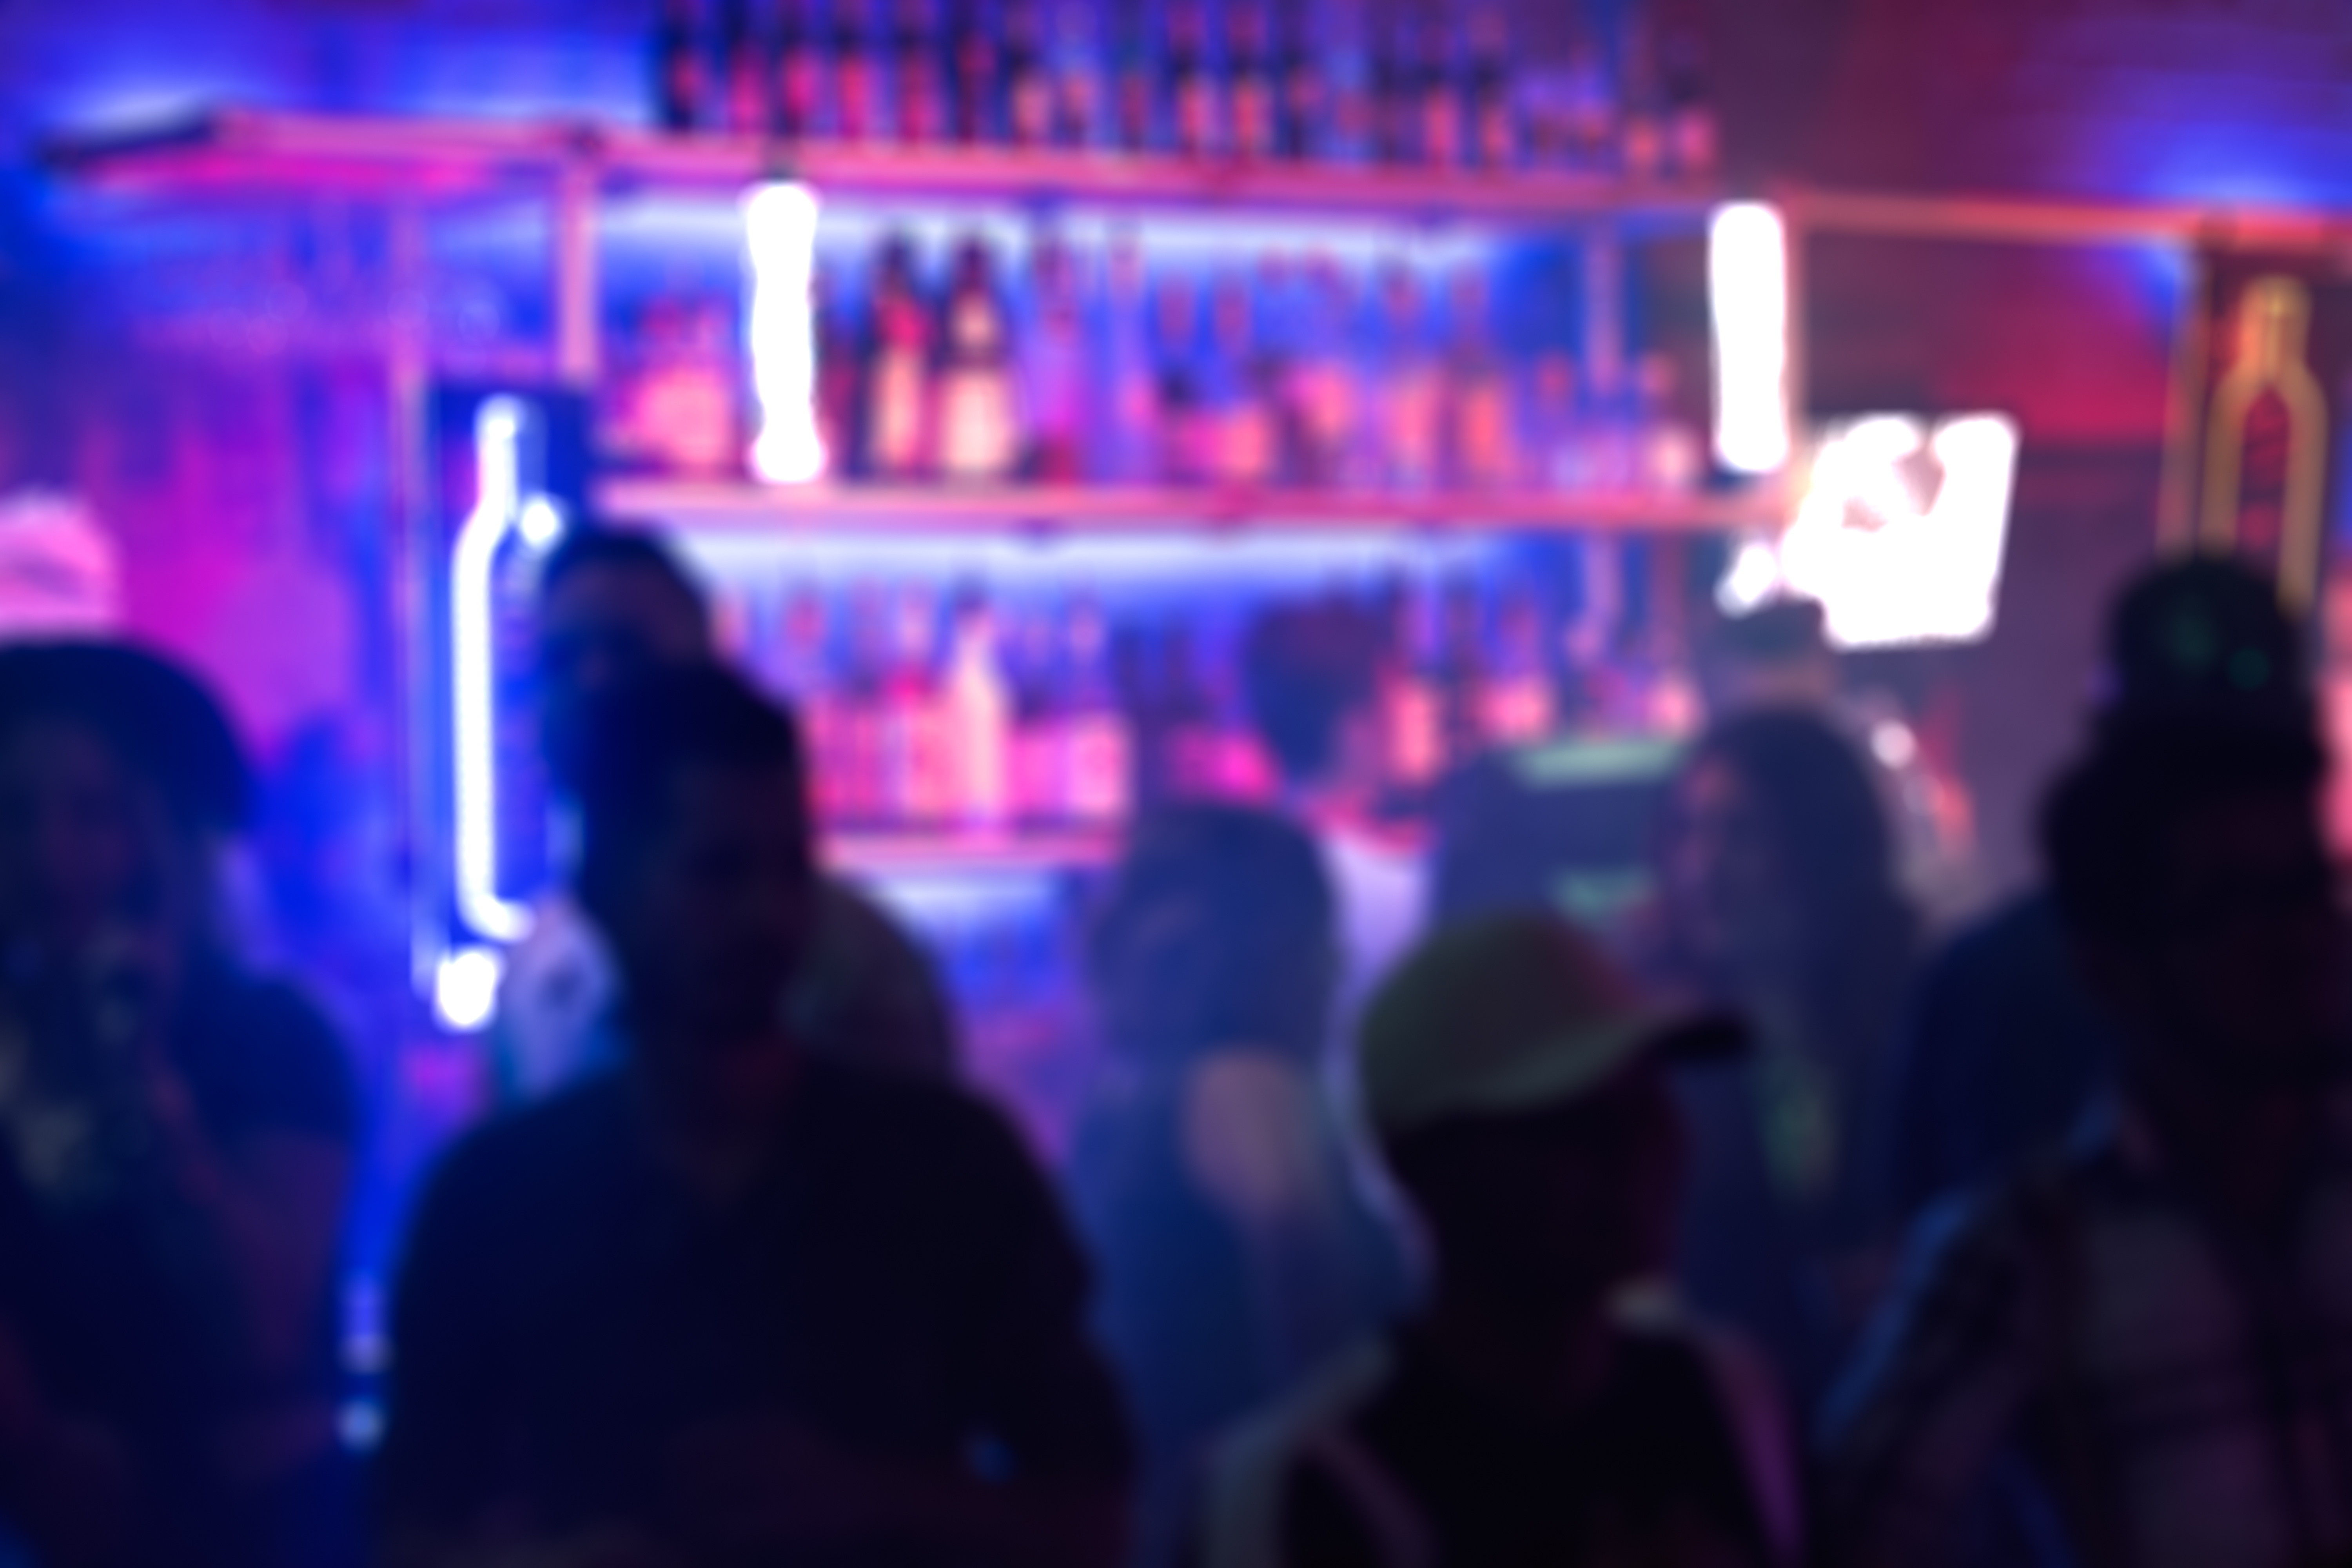 Blurry silhouettes of people cluster around a bar, with bottles of liquor visible in the background.